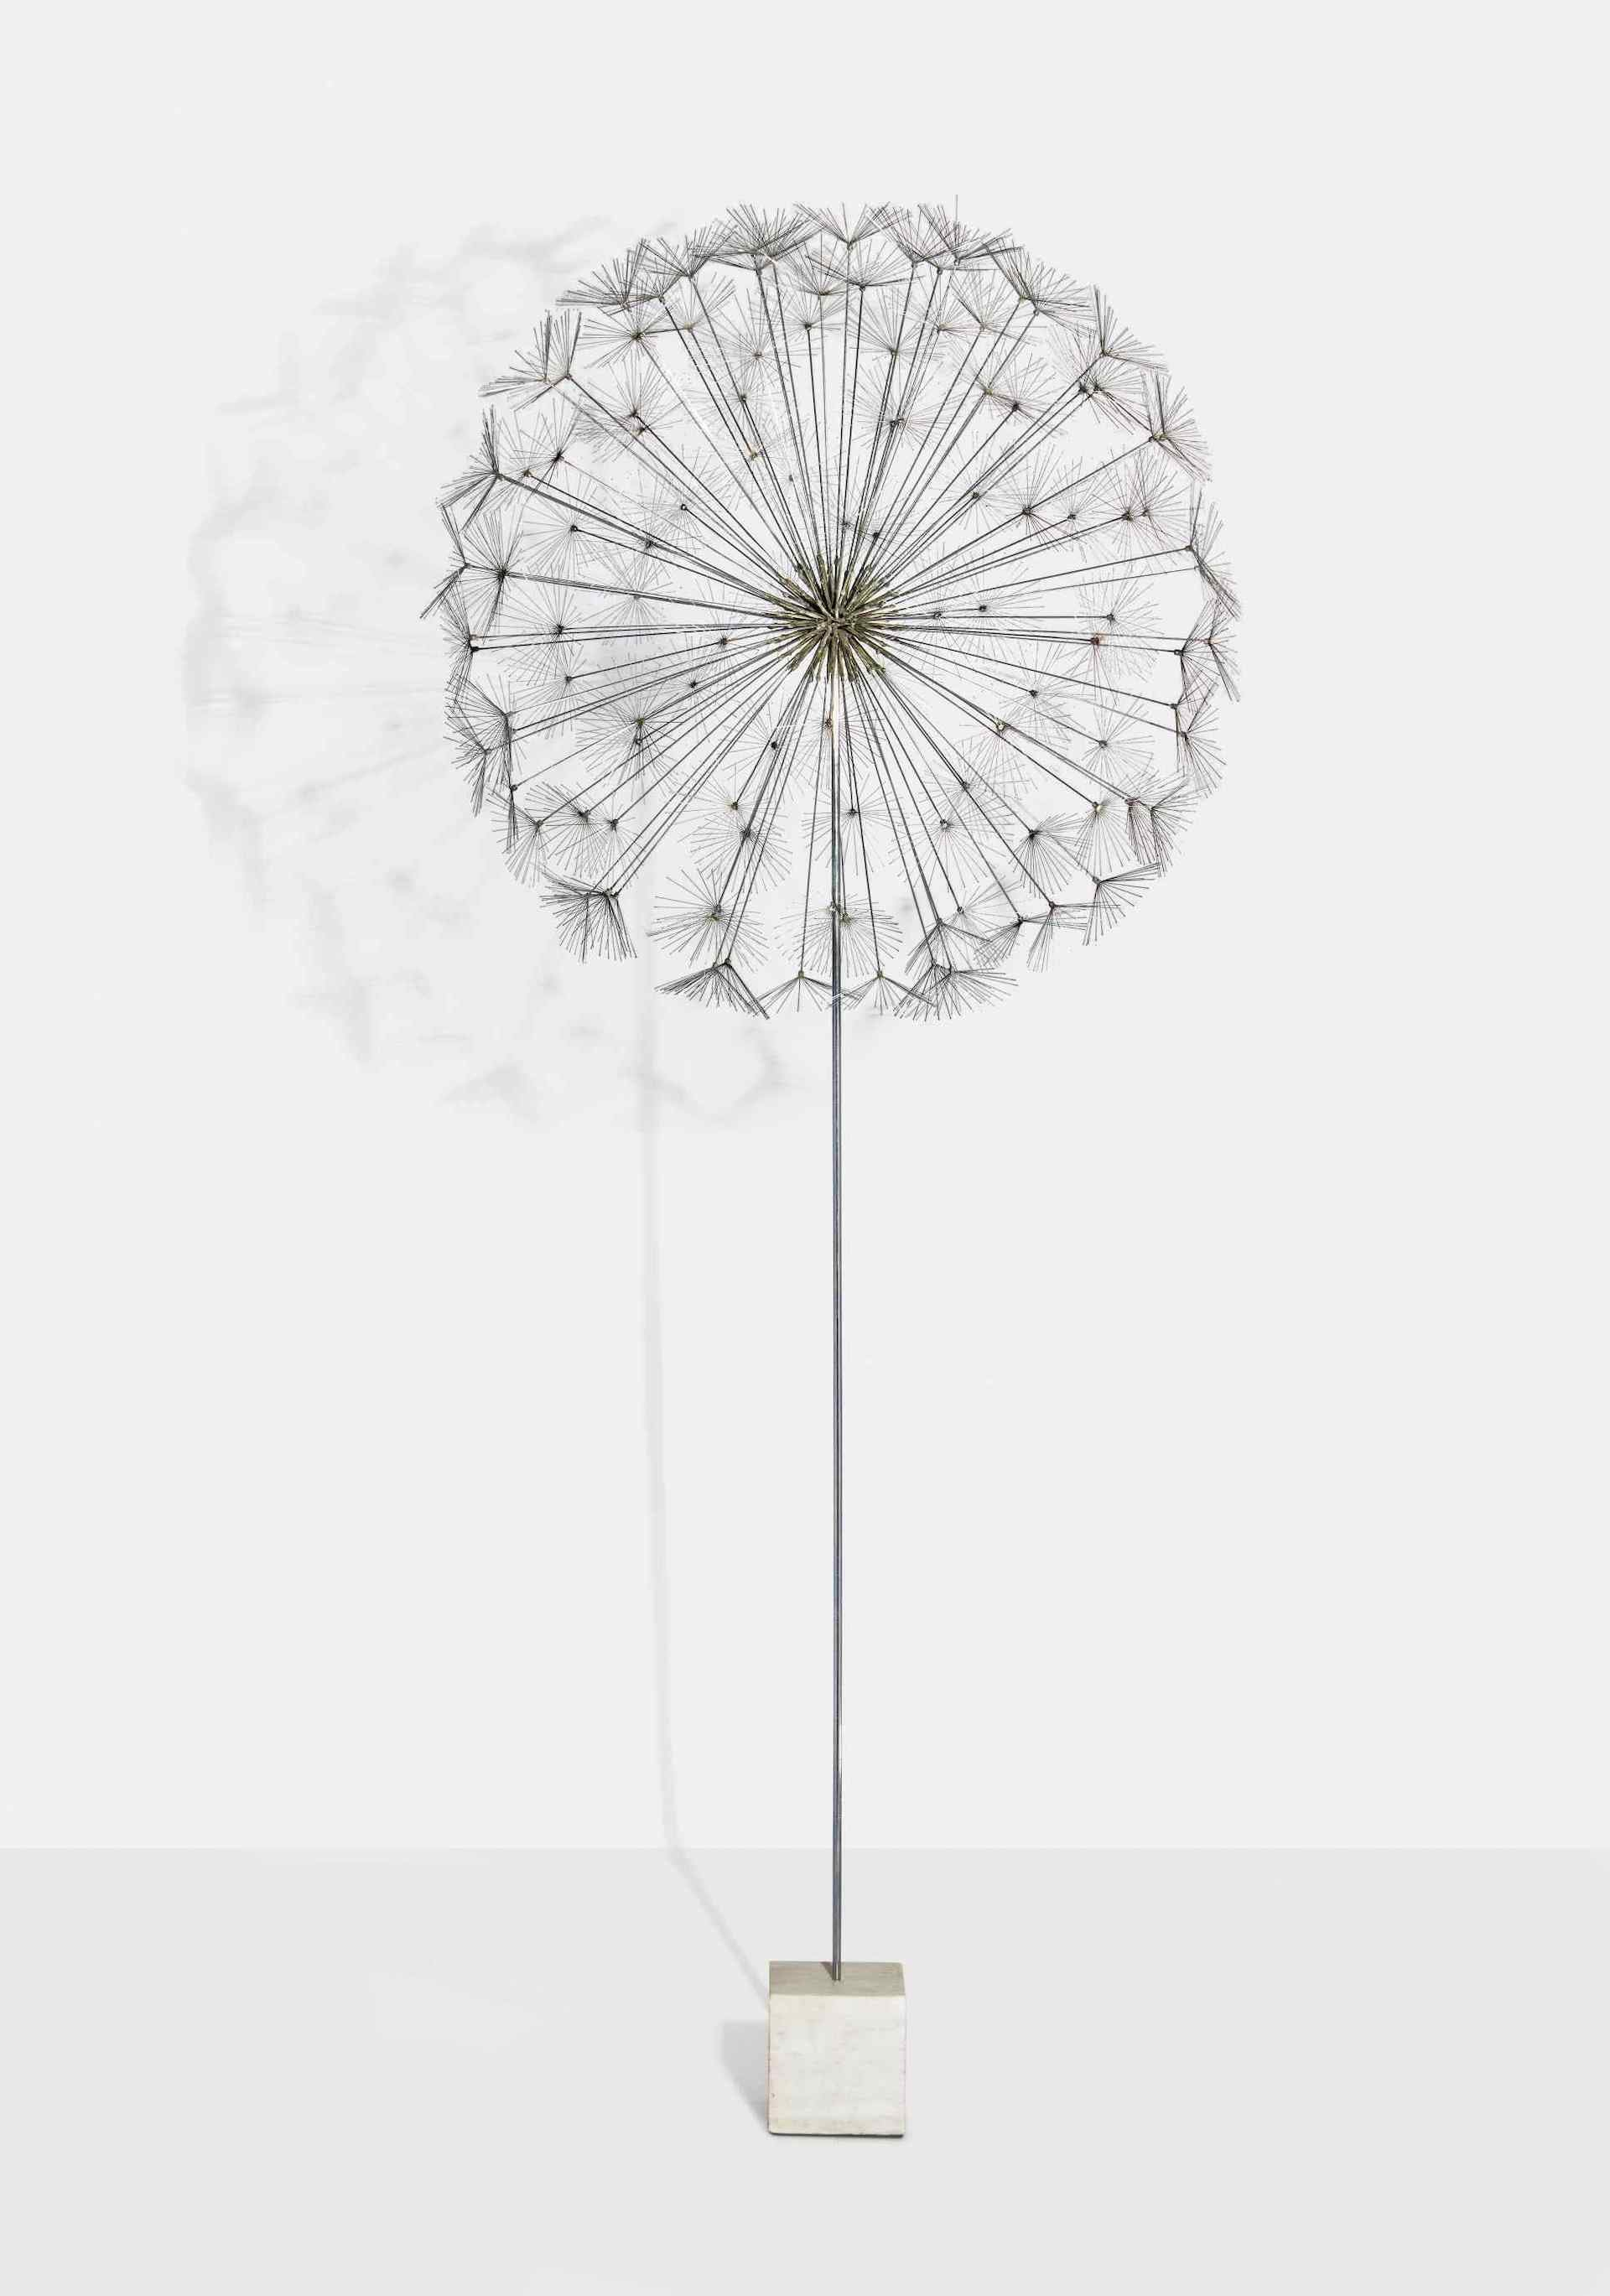 Sotheby's New York 25 May 2021 - Important Design: from Noguchi to Lalanne [lot 132]: Untitled (Dandelion) by Harry Bertoia, 1958. Estimate: $150,000 - $200,000. Sold: $1,943,900. Photo © Sotheby's